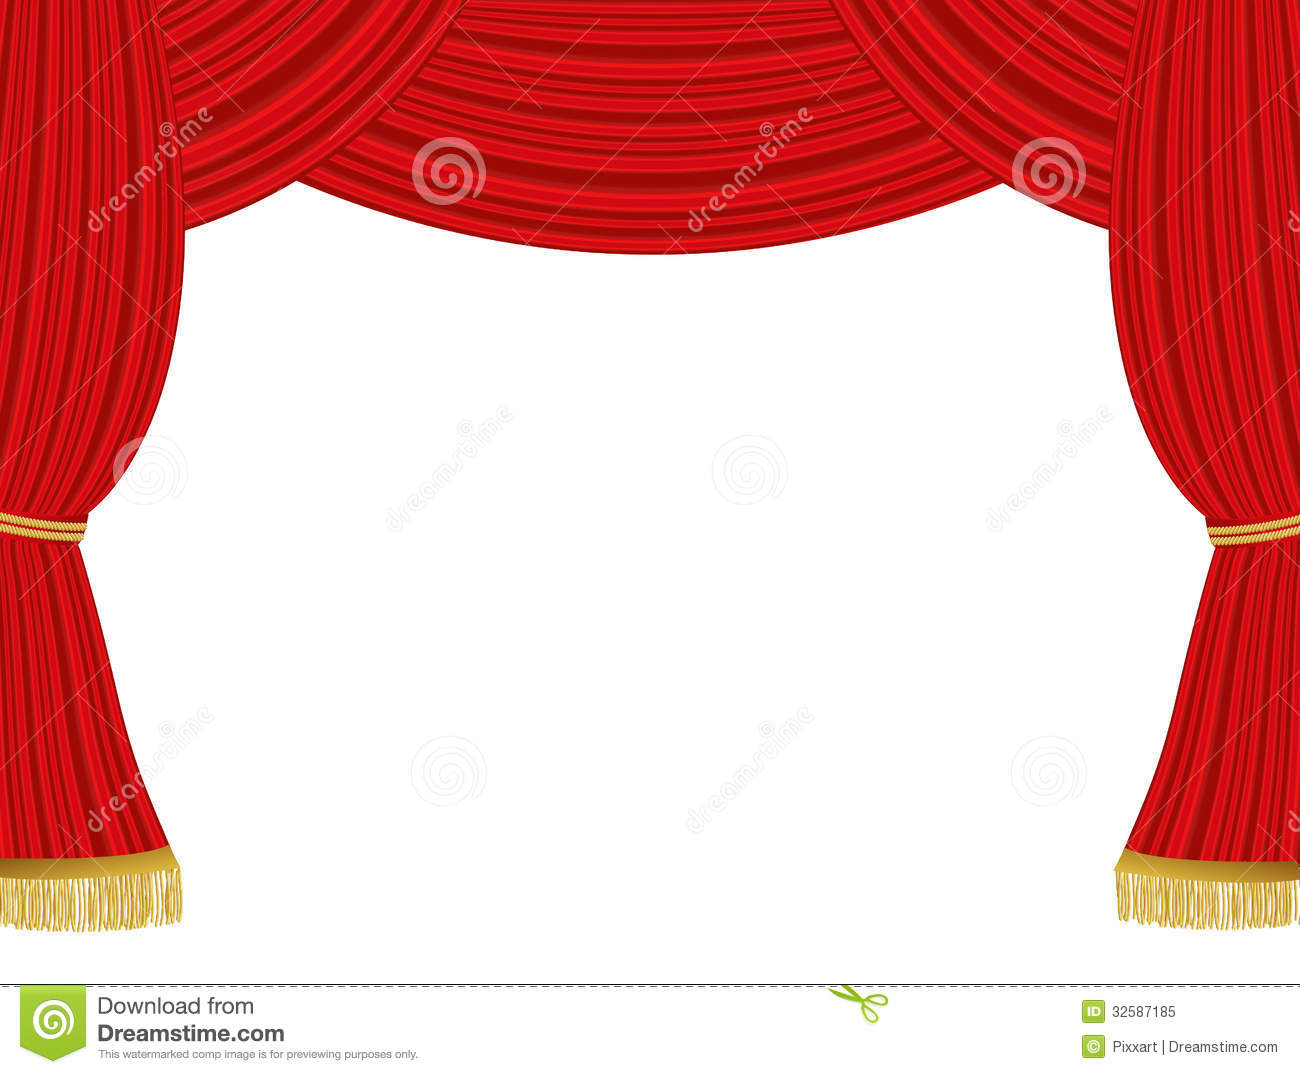 Png clipart background with red velvet curtain stage curtain clip art - Theater Curtains Background Royalty Free Stock Photo